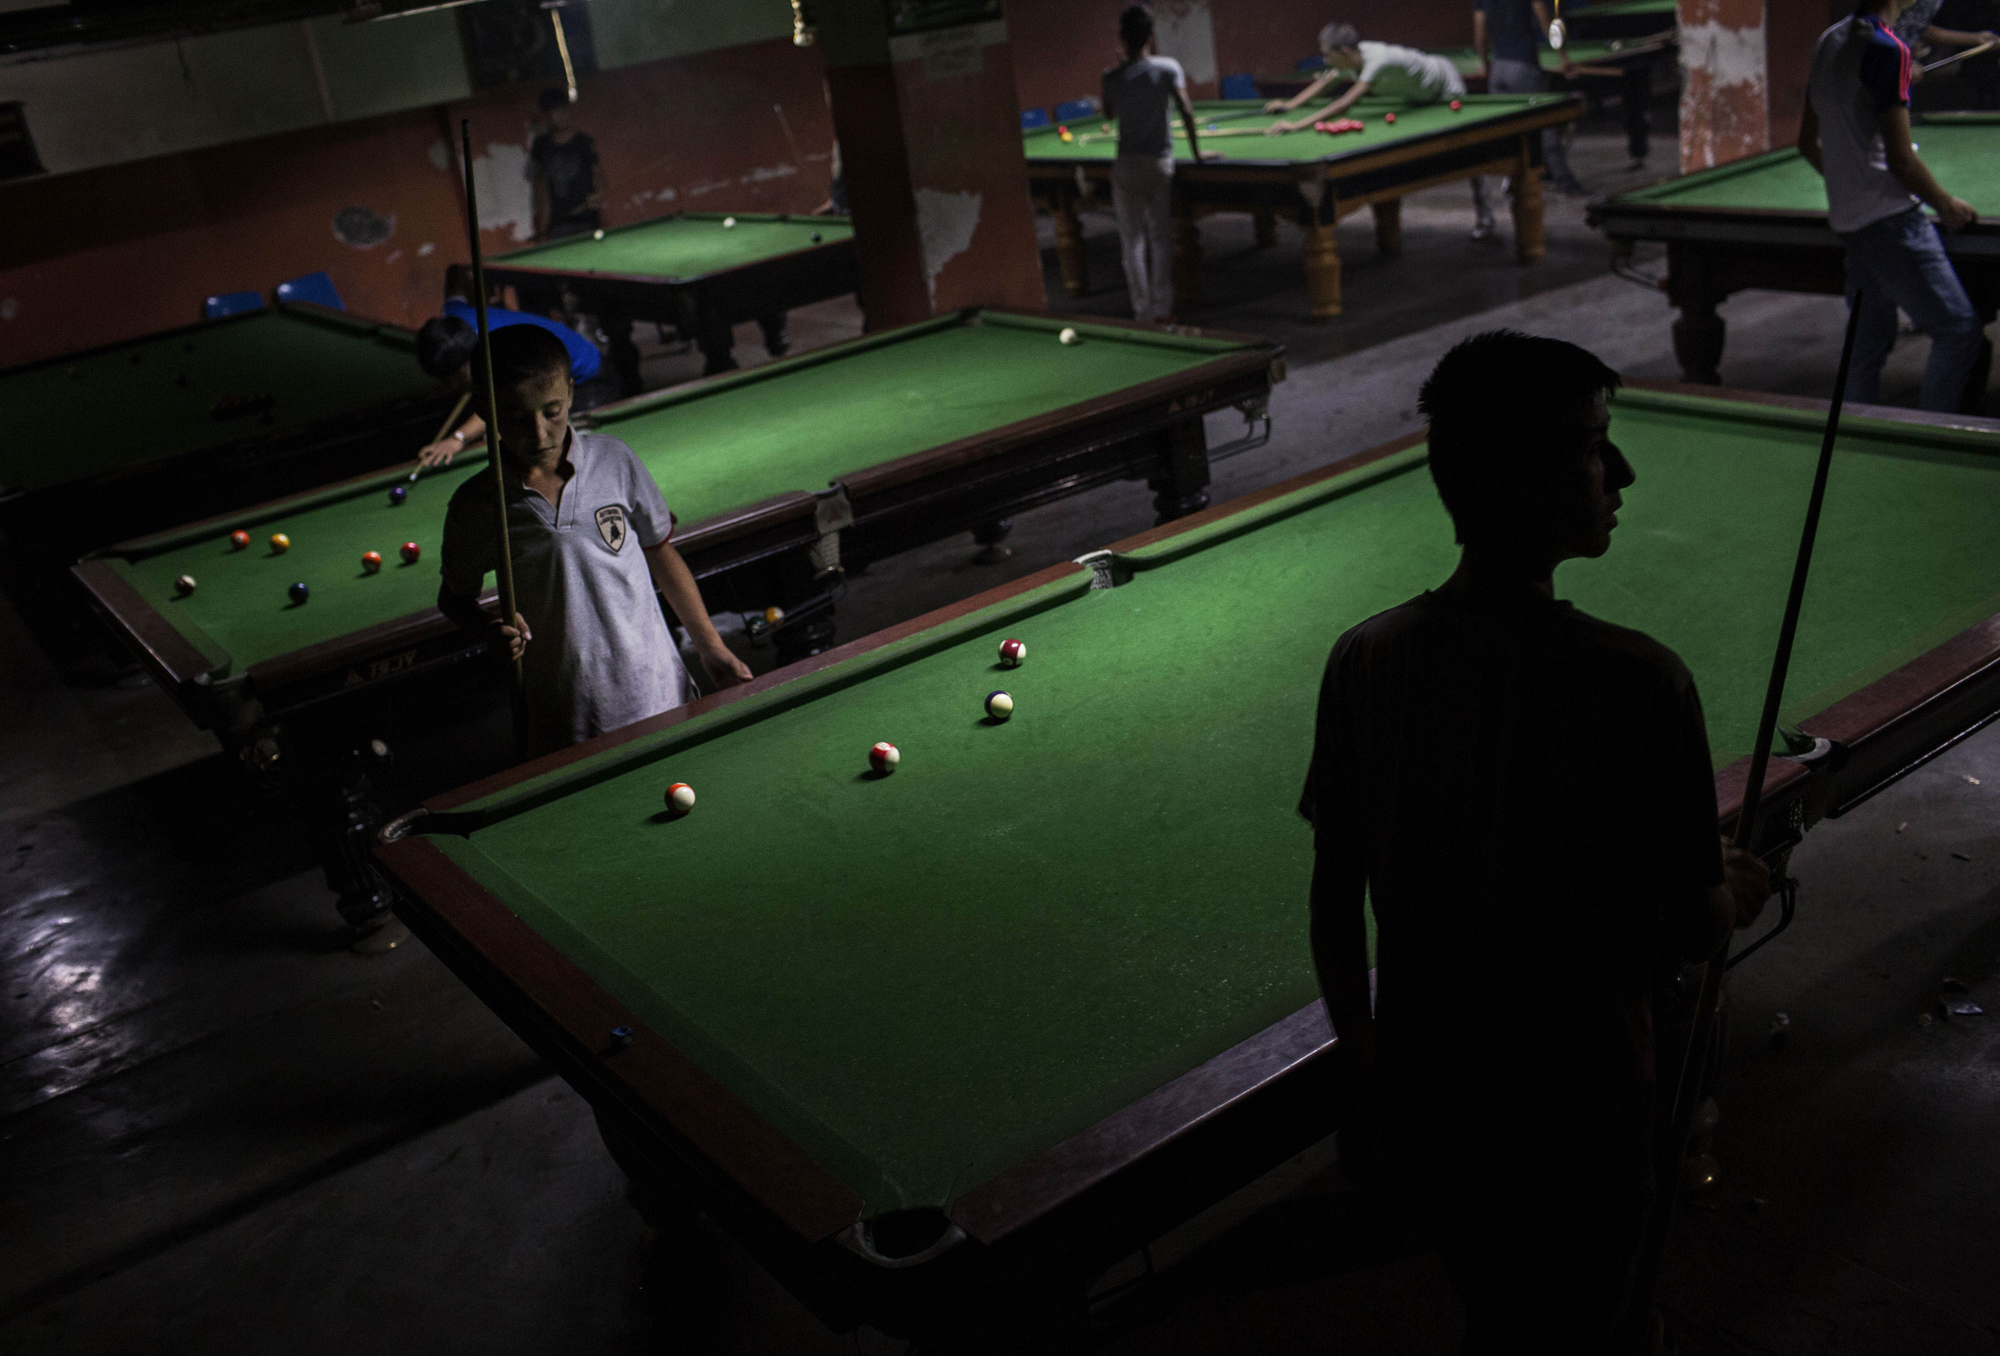 Uighur youth play pool at a billiard hall on August 2, 2014 in Kashgar.